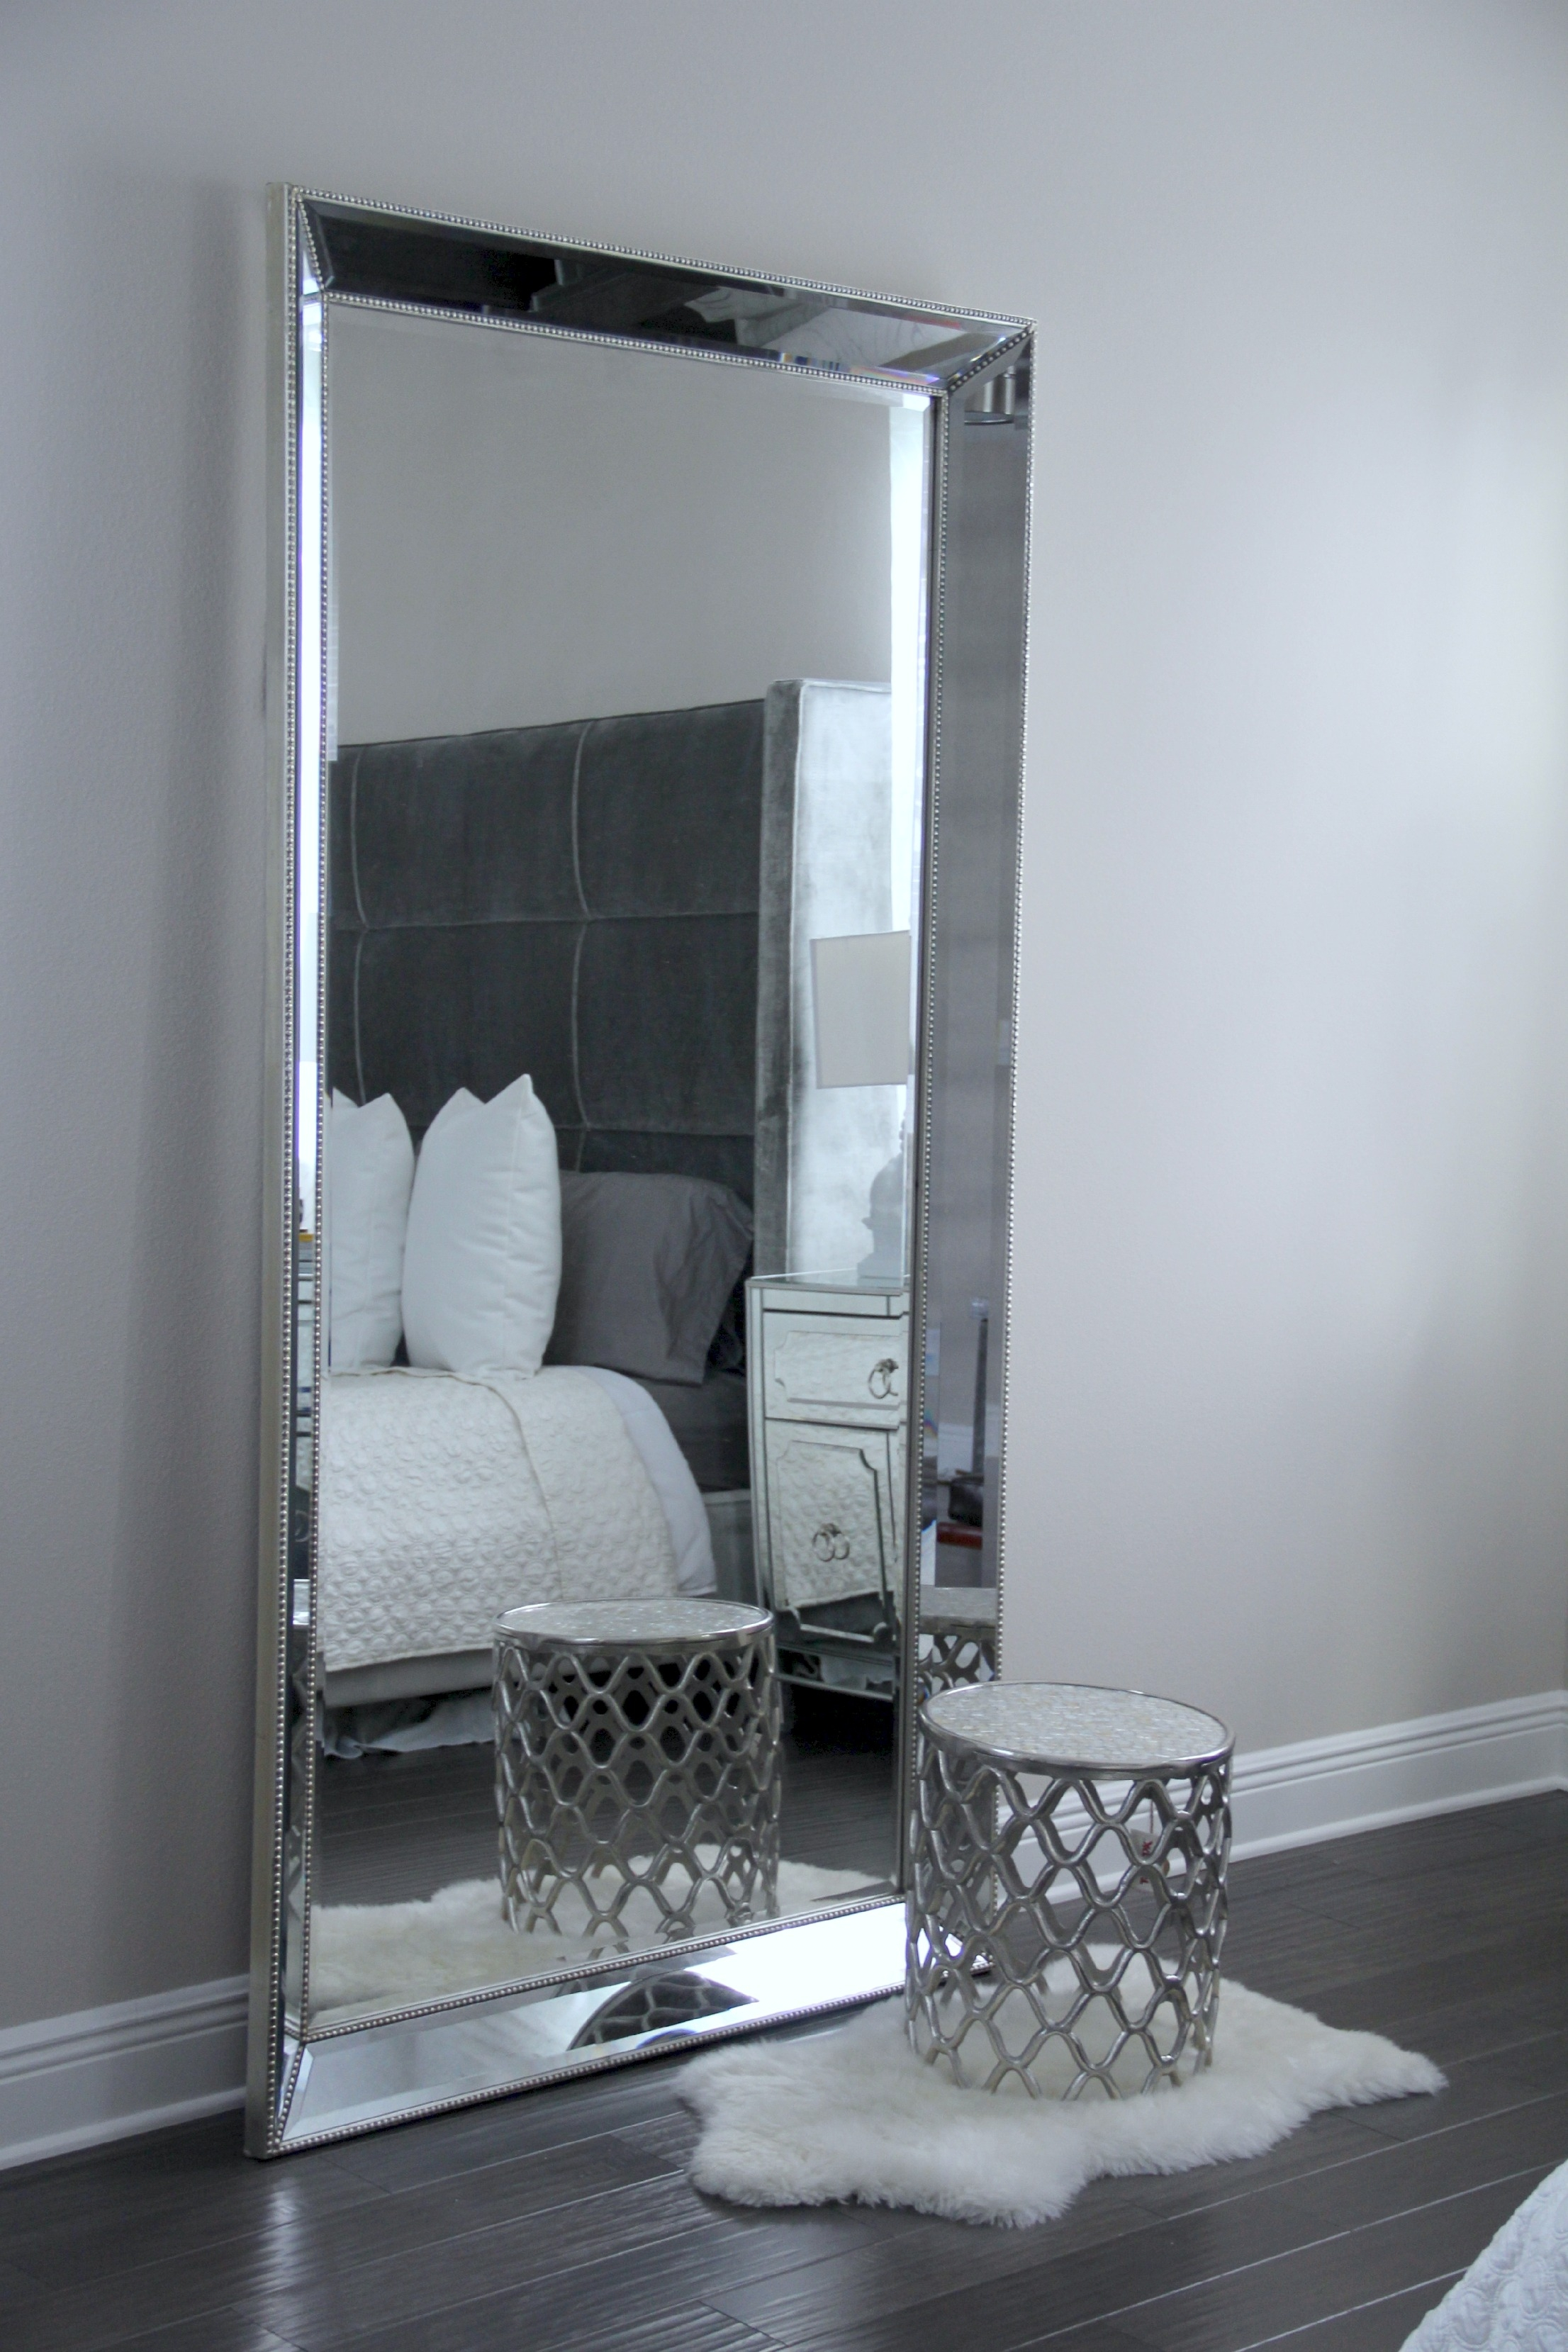 Designslaila Showcases Our Stunning Omni Leaner Mirror In Her With Regard To Massive Wall Mirrors (Image 9 of 15)